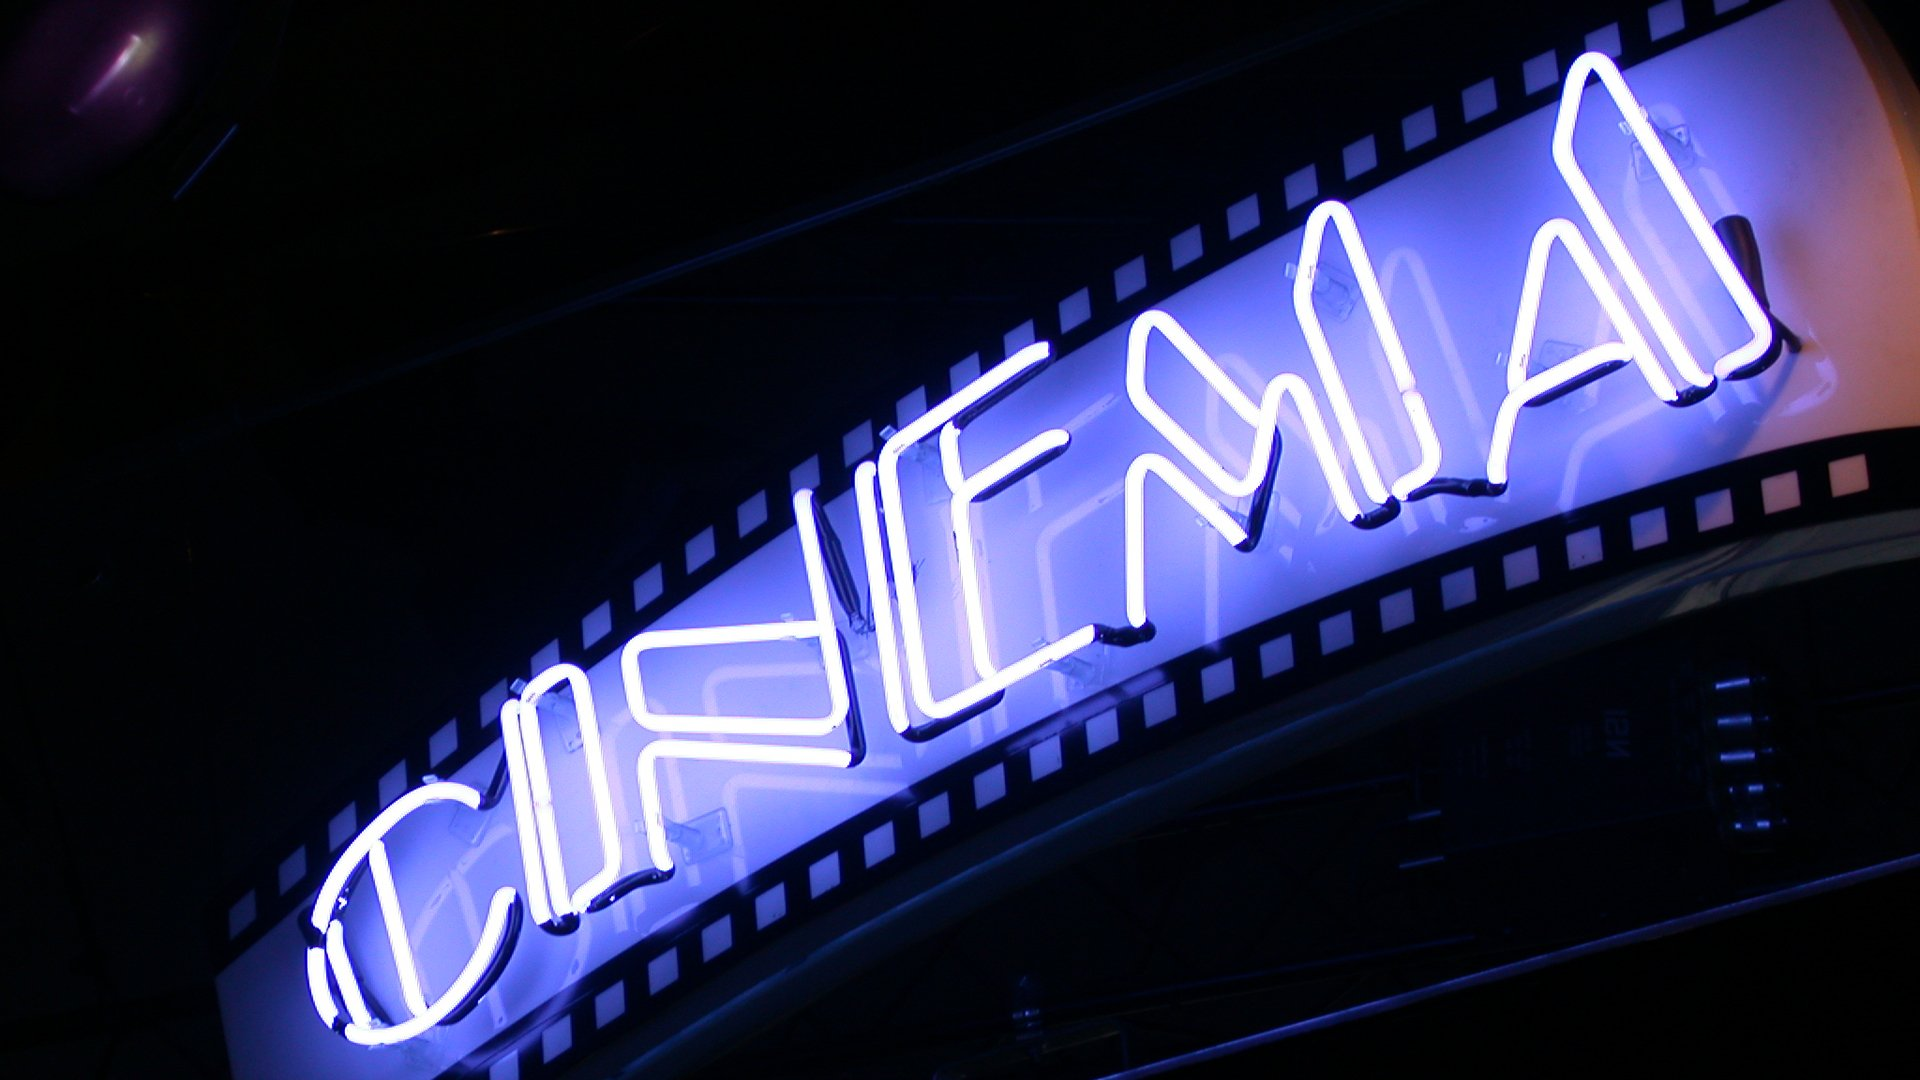 Cinema Experience addon for Kodi and XBMC